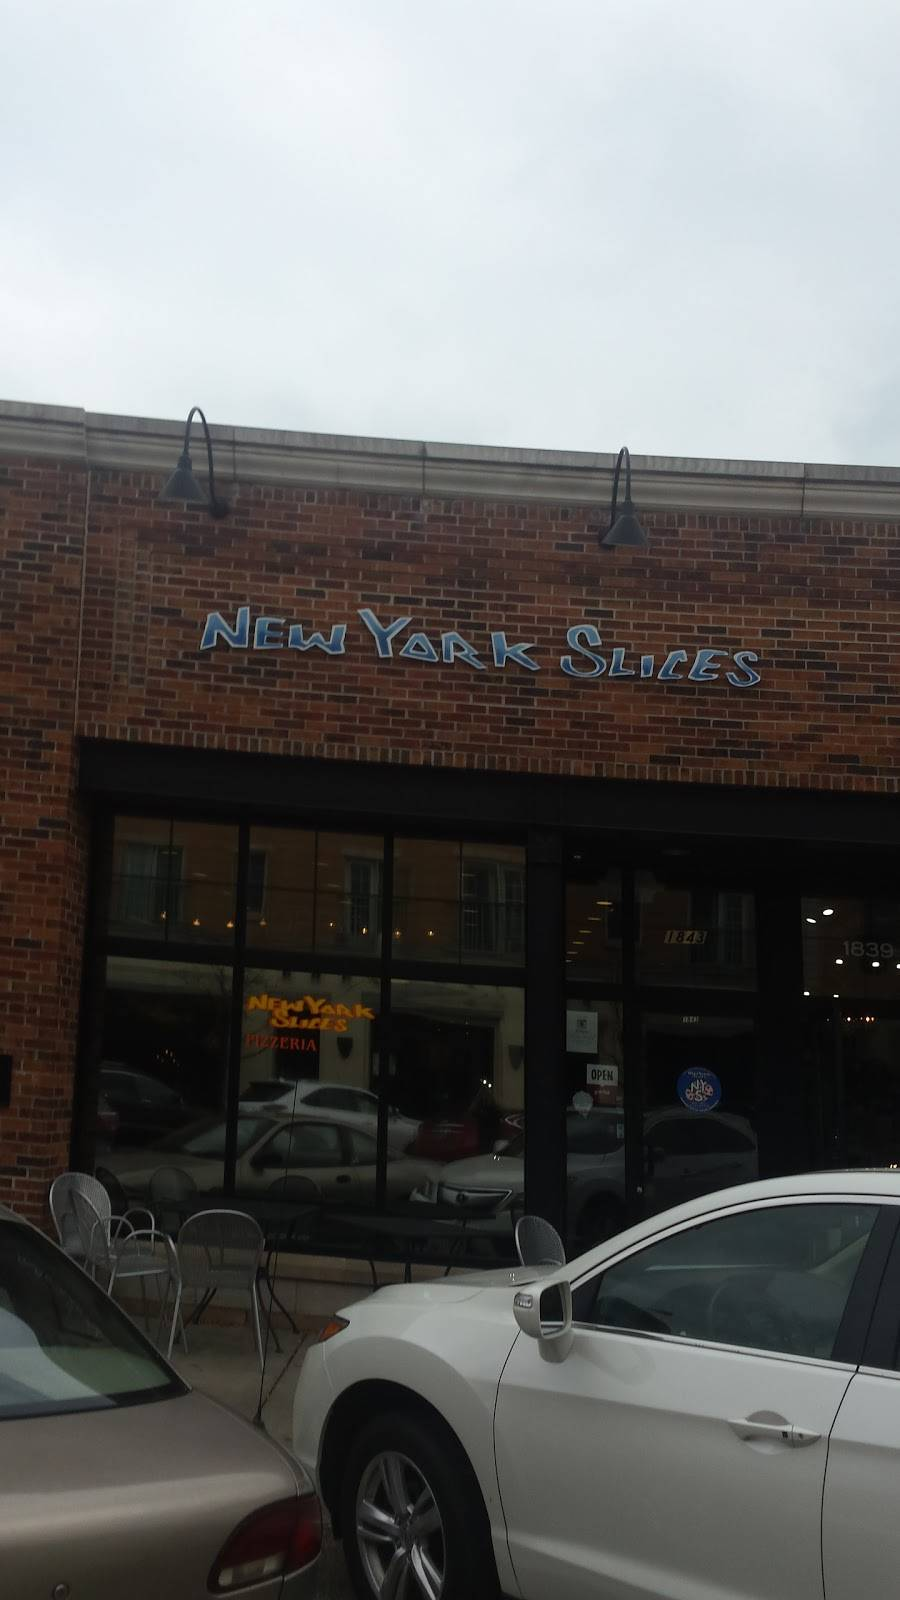 New York Slices   meal delivery   1843 2nd St, Highland Park, IL 60035, USA   8474326979 OR +1 847-432-6979